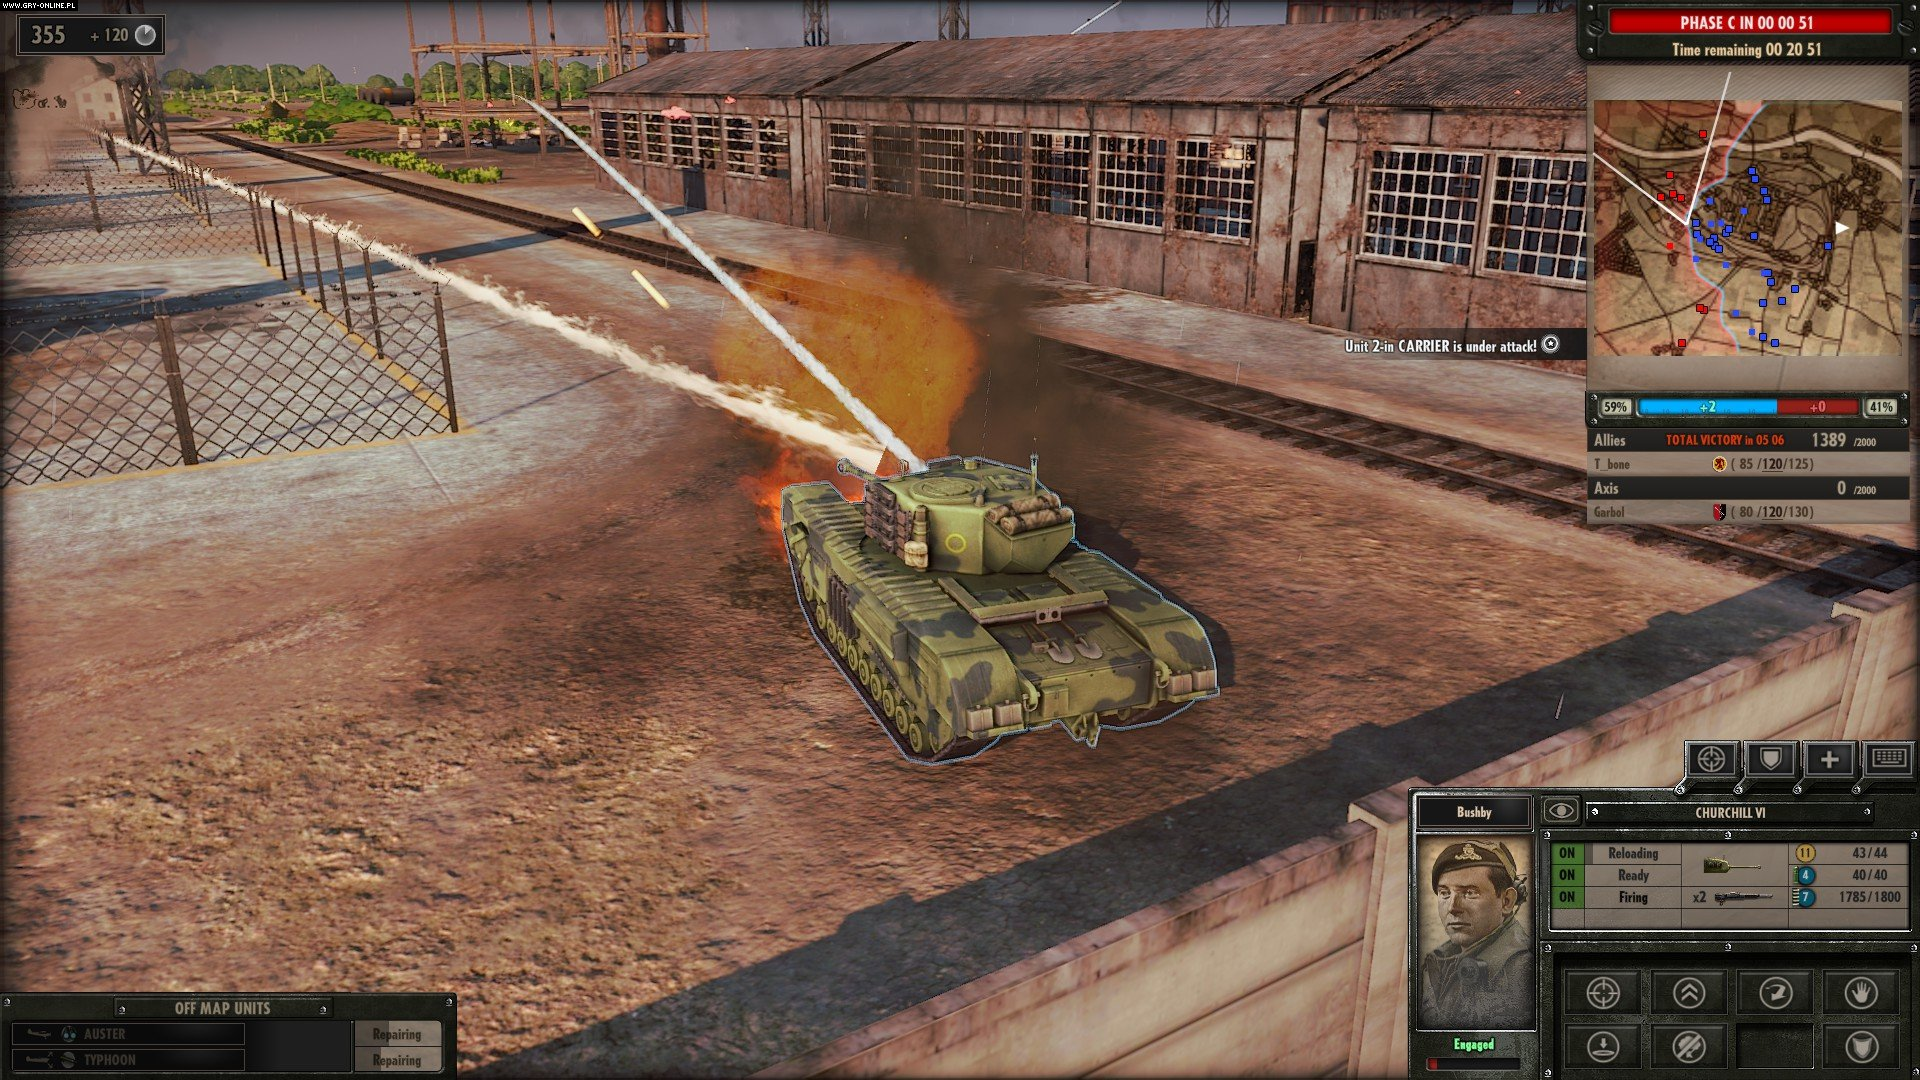 Steel Division: Normandy 44 PC Games Image 24/37, Eugen Systems, Paradox Interactive